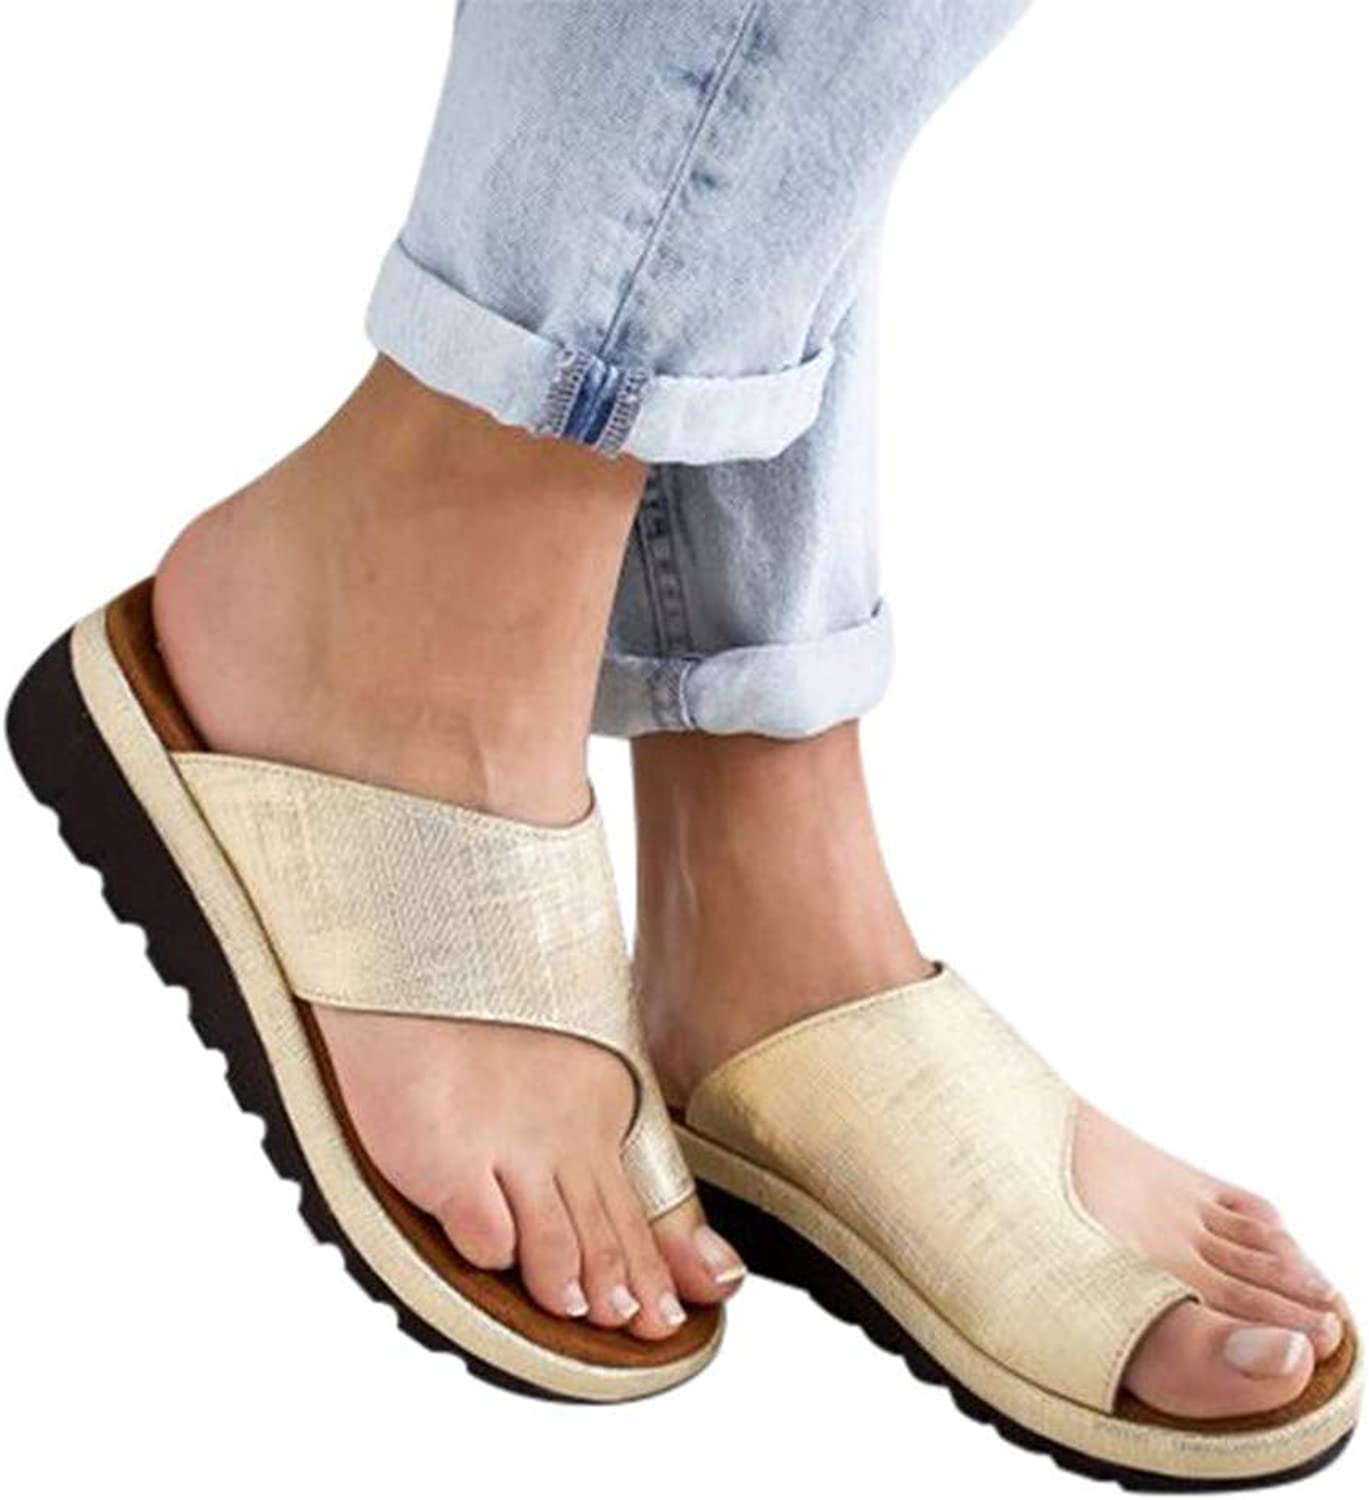 Women Orthotic Sandals with Great Arch Support and Plantar Fasciitis Relief PU Leather Soft Orthotic Sandals Beach Flip Flops Outdoor Toe Post Sandal,gold,42